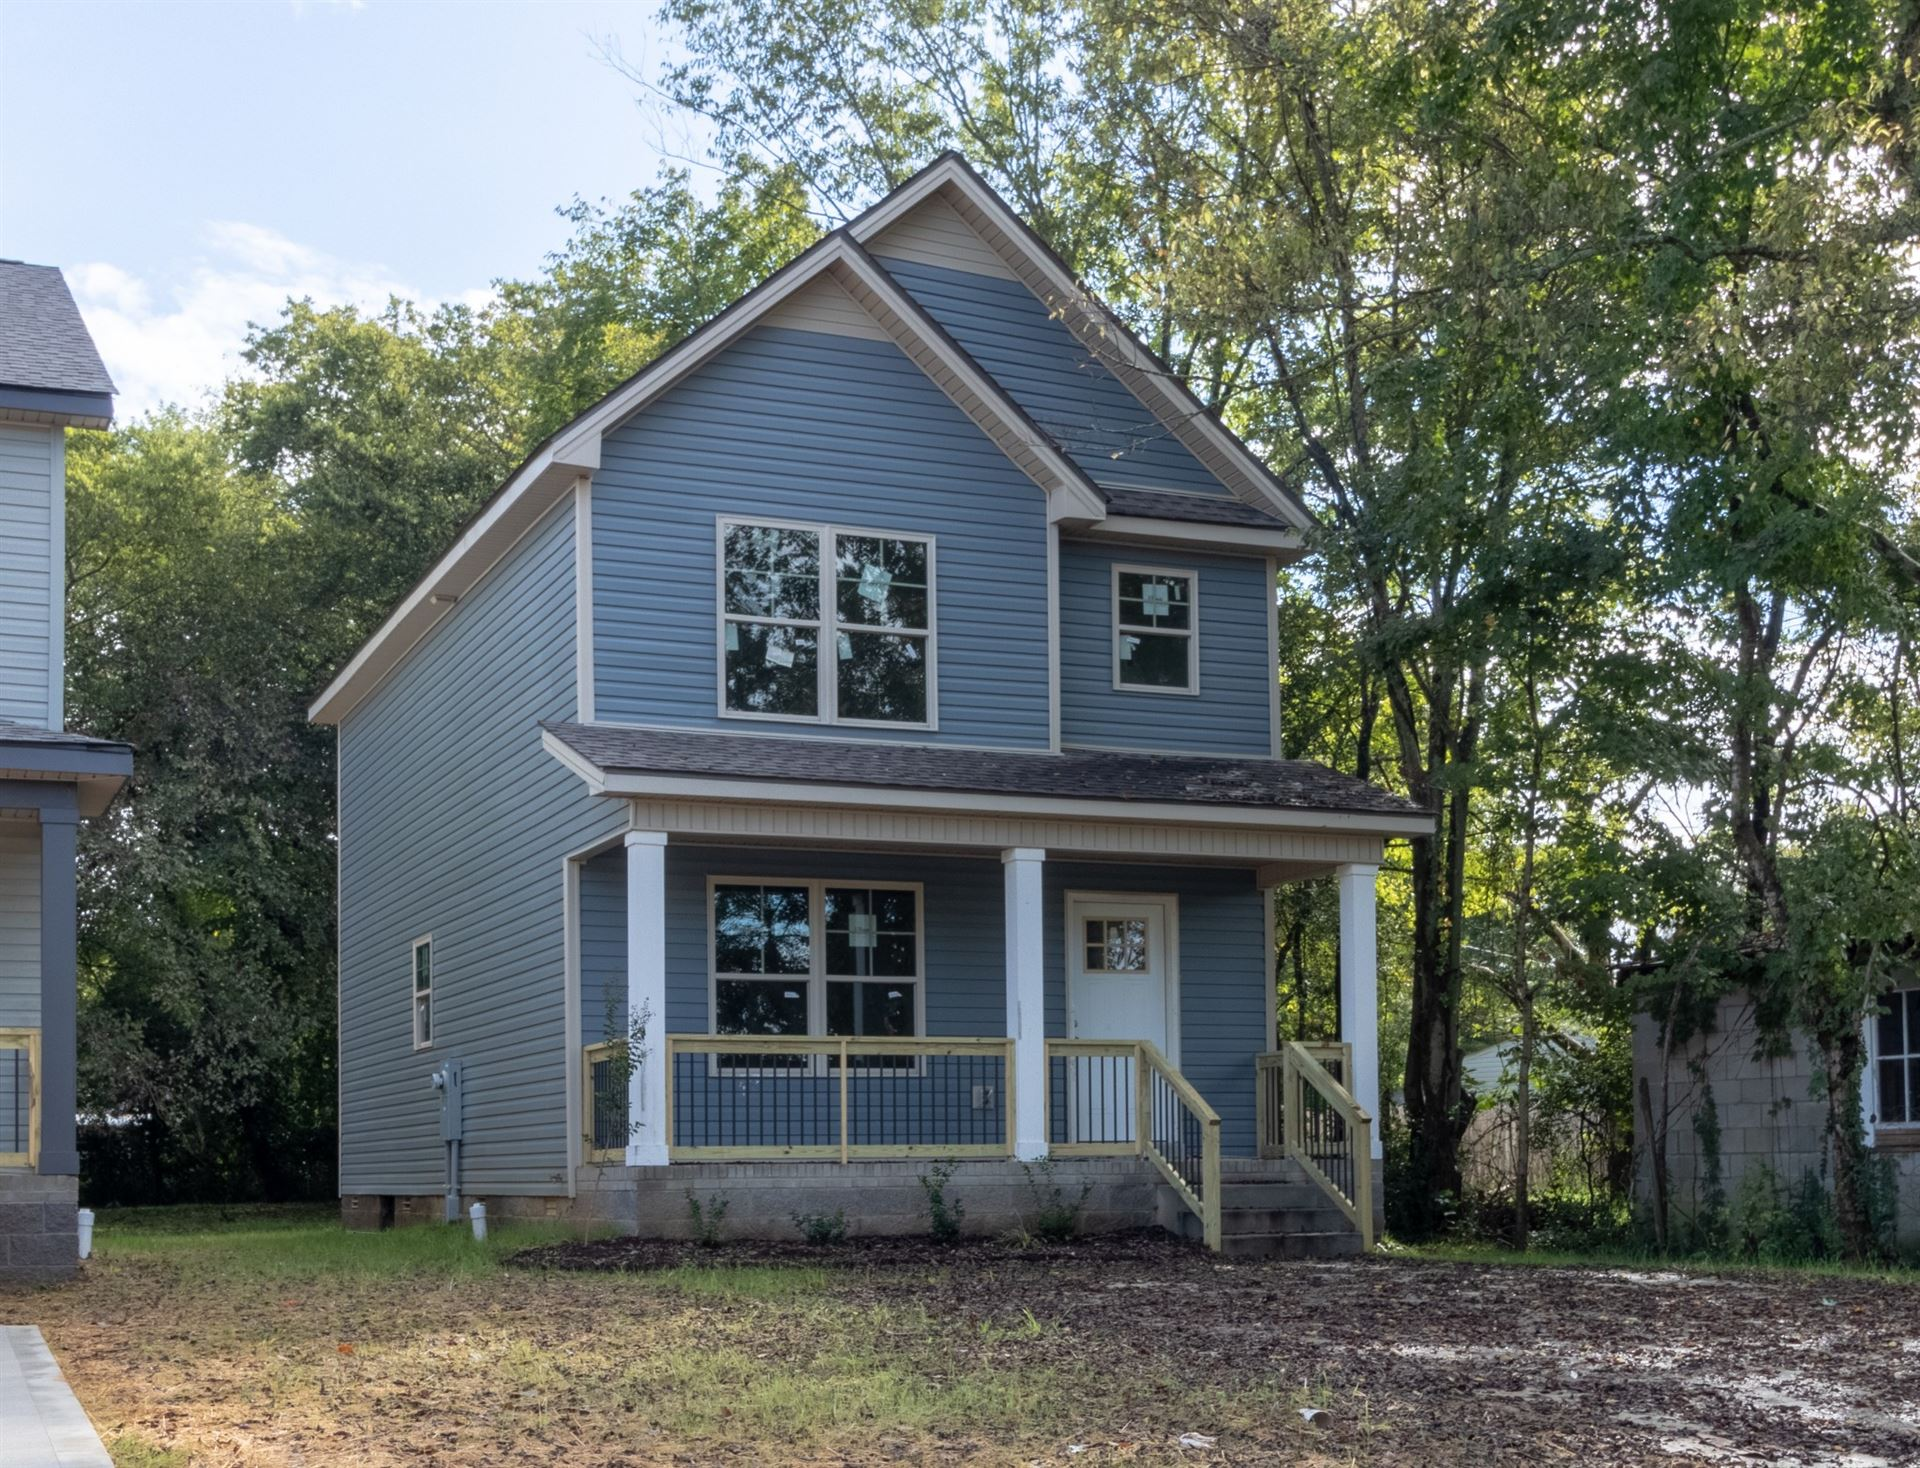 867 Central Ave, Clarksville, TN 37040 - MLS#: 2298090